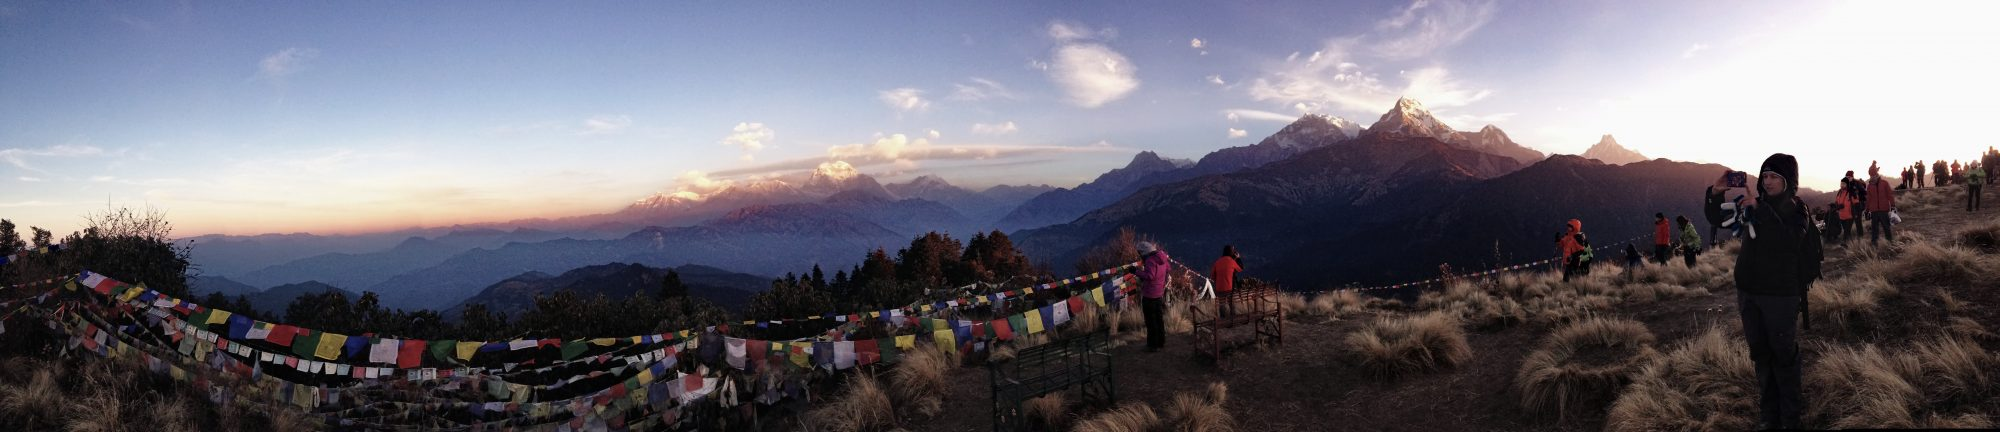 Panorama am Poon Hill